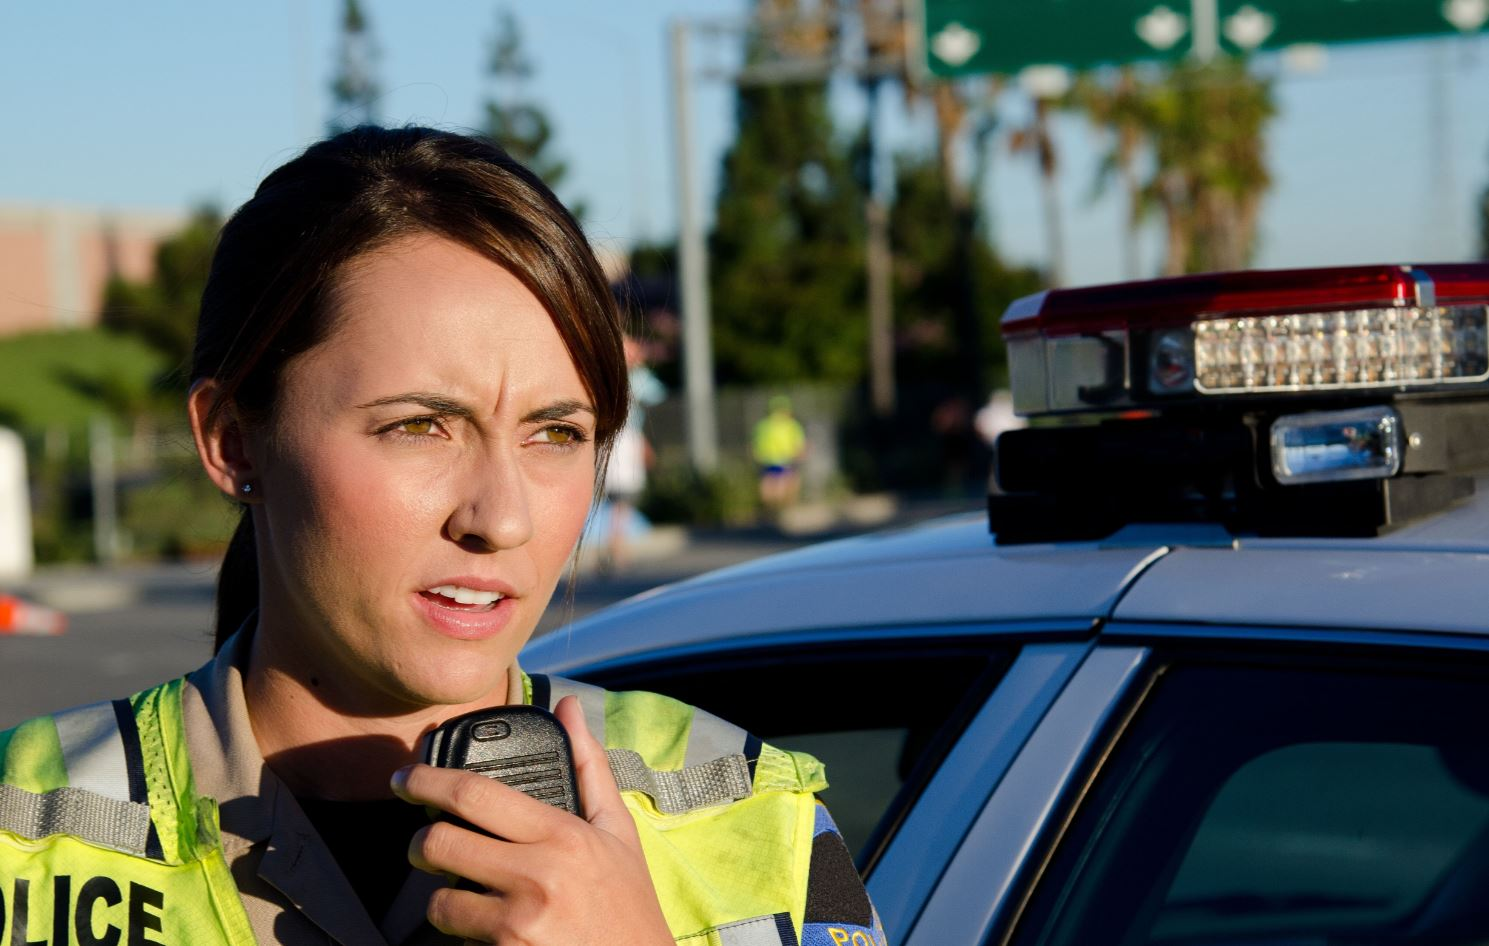 Police officer talking into a radio.-1